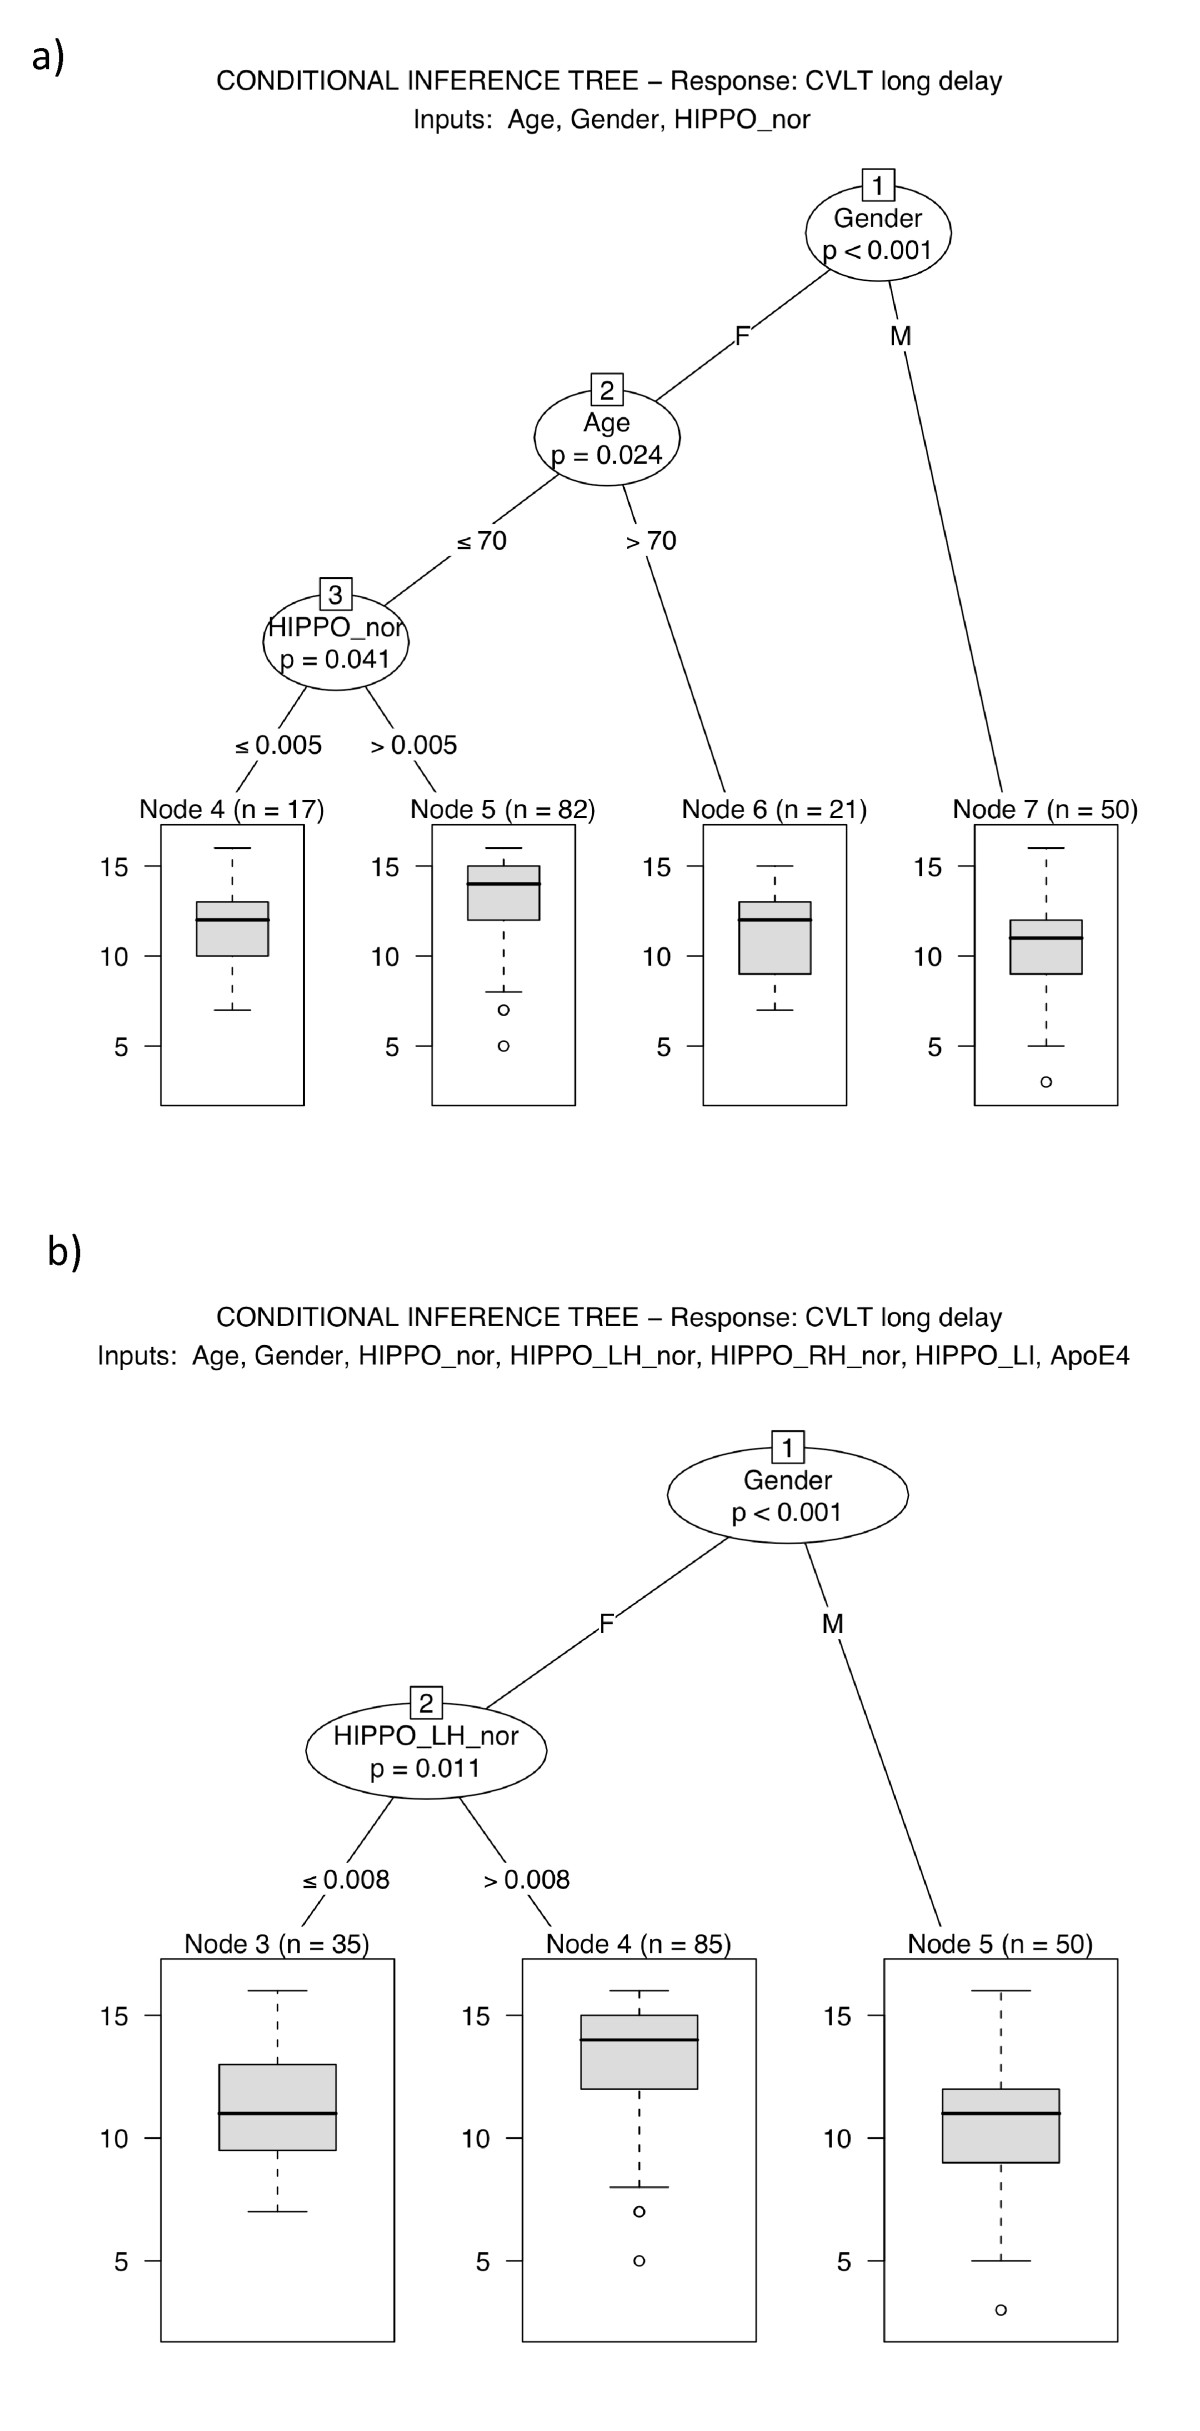 http://static-content.springer.com/image/art%3A10.1186%2F1471-2342-9-17/MediaObjects/12880_2009_Article_75_Fig6_HTML.jpg